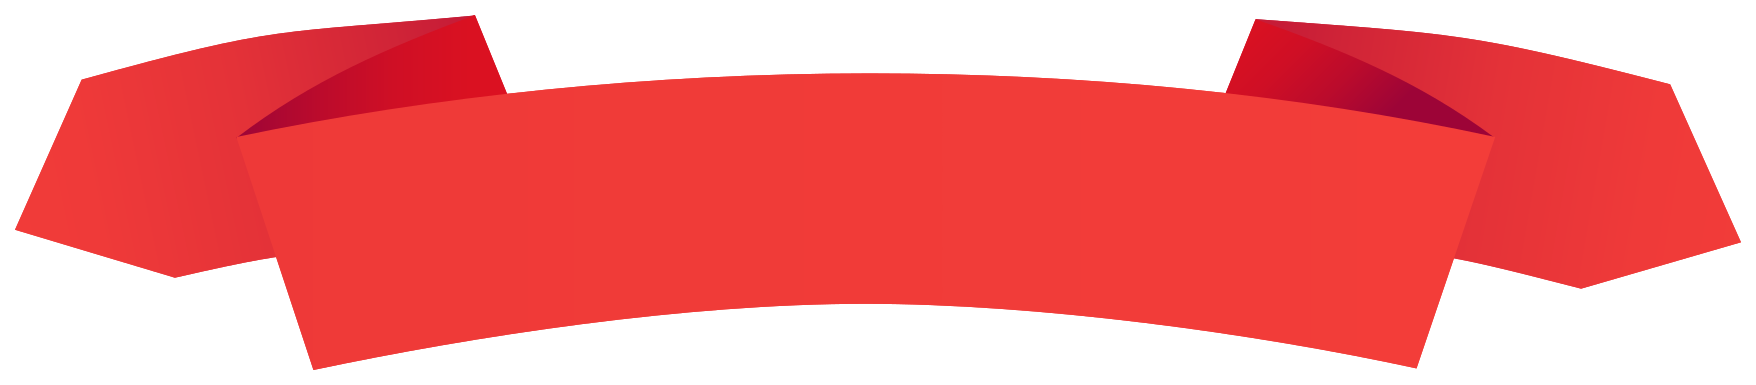 Bright color banner png